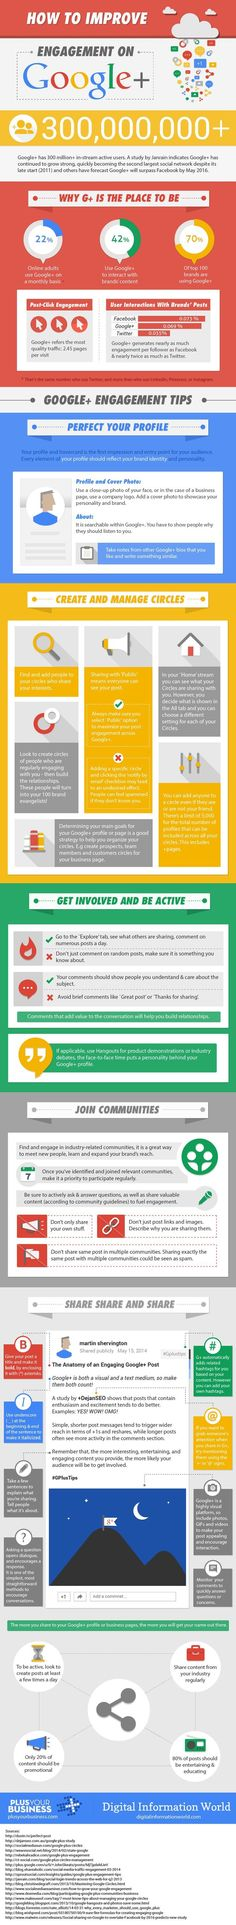 A Complete Guide to Google+ Marketing ~ Improve Engagement for Google Plus Marketing with these tips #GooglePlus #Marketing #Tips